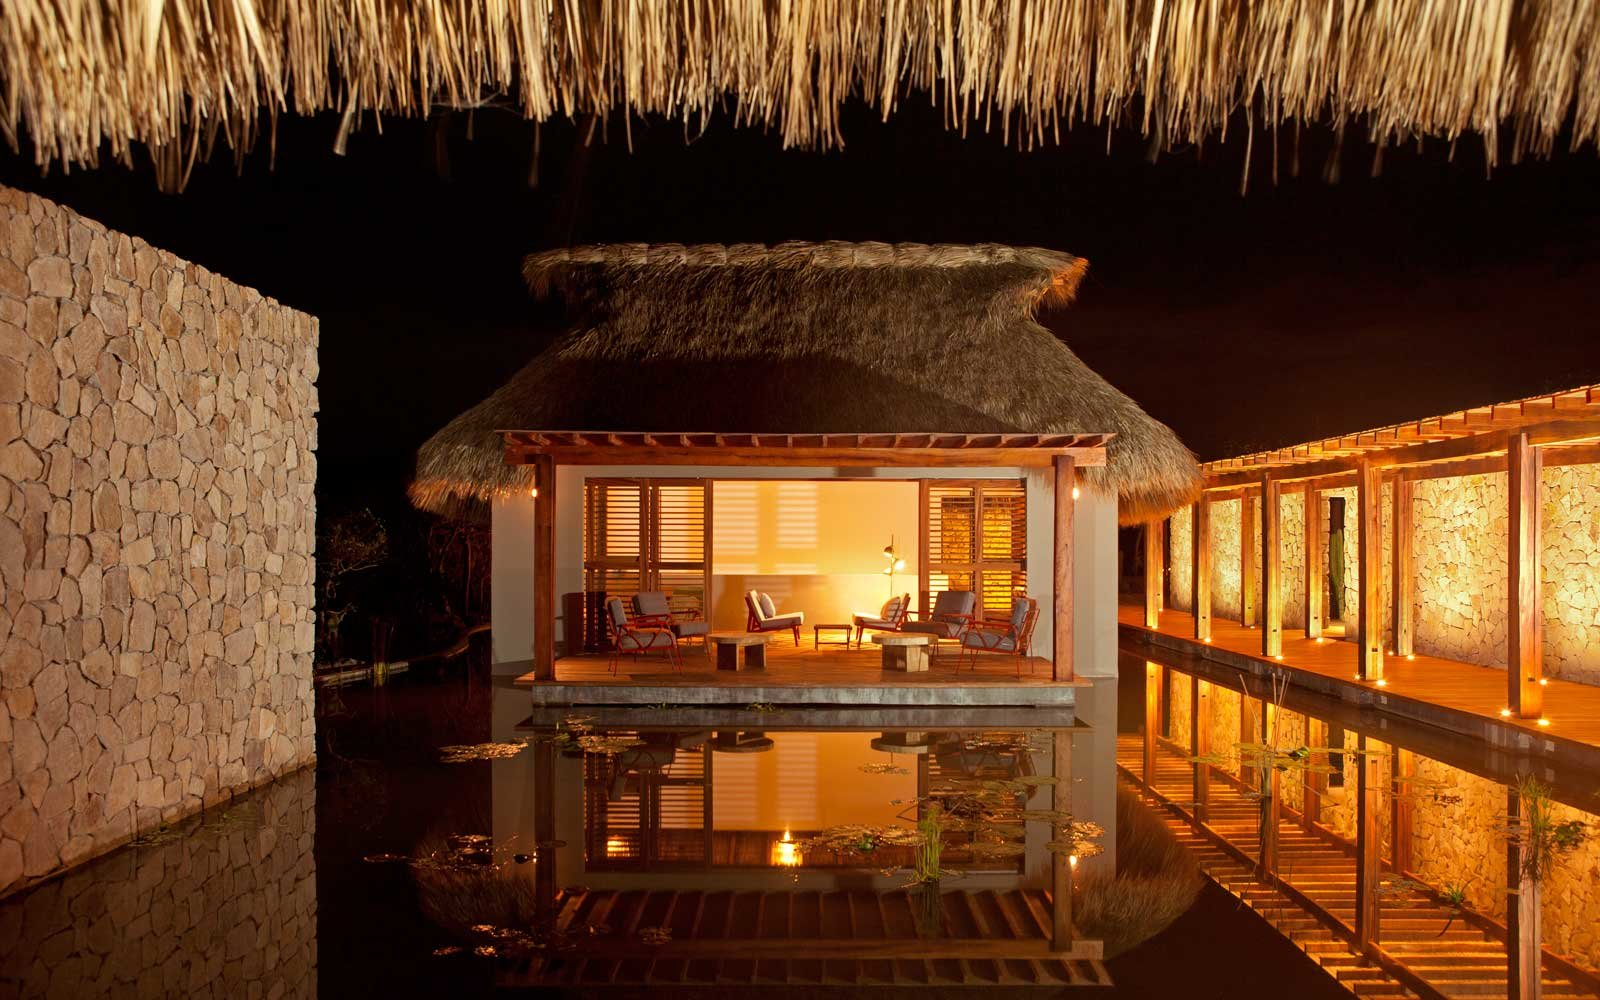 12 Secluded Bungalows In Mexico For Your Next Beach